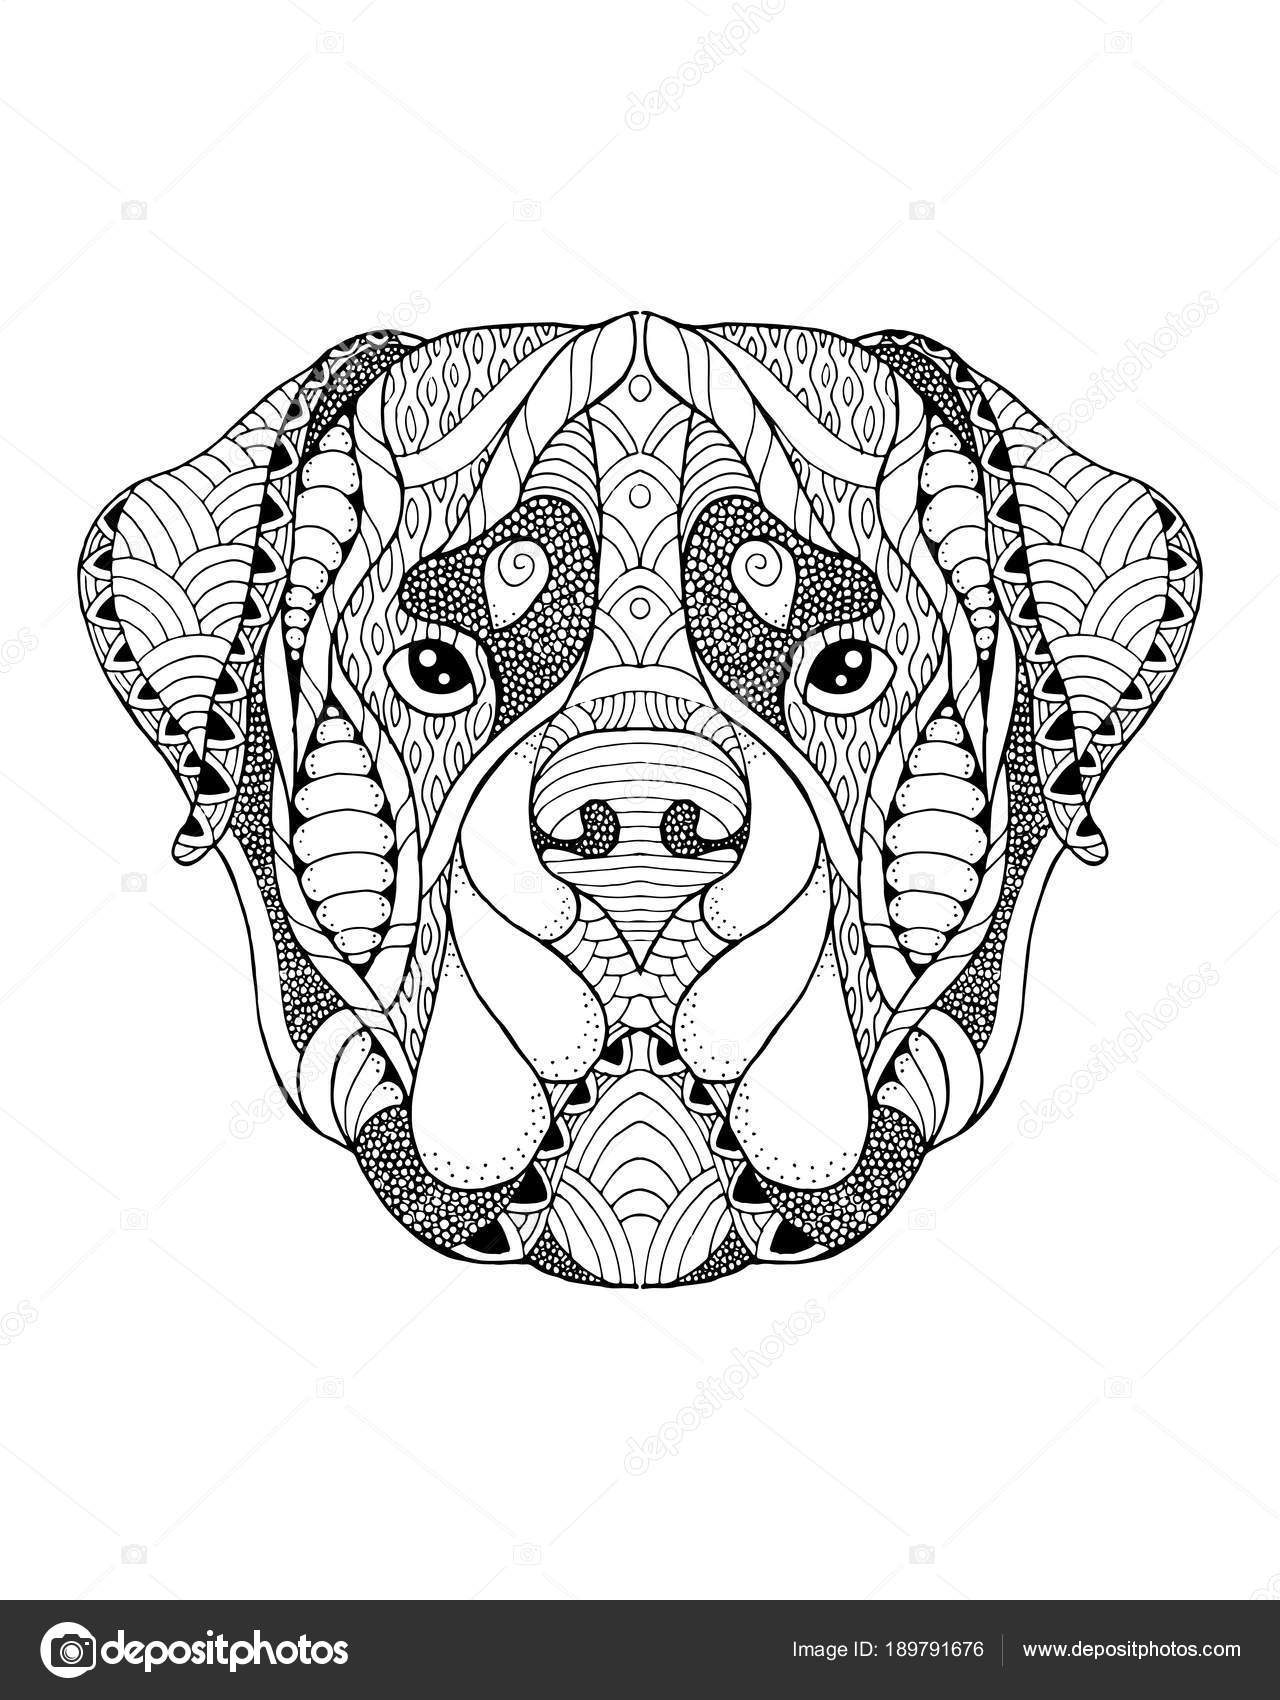 rottweiler zentangle stylized freehand vector